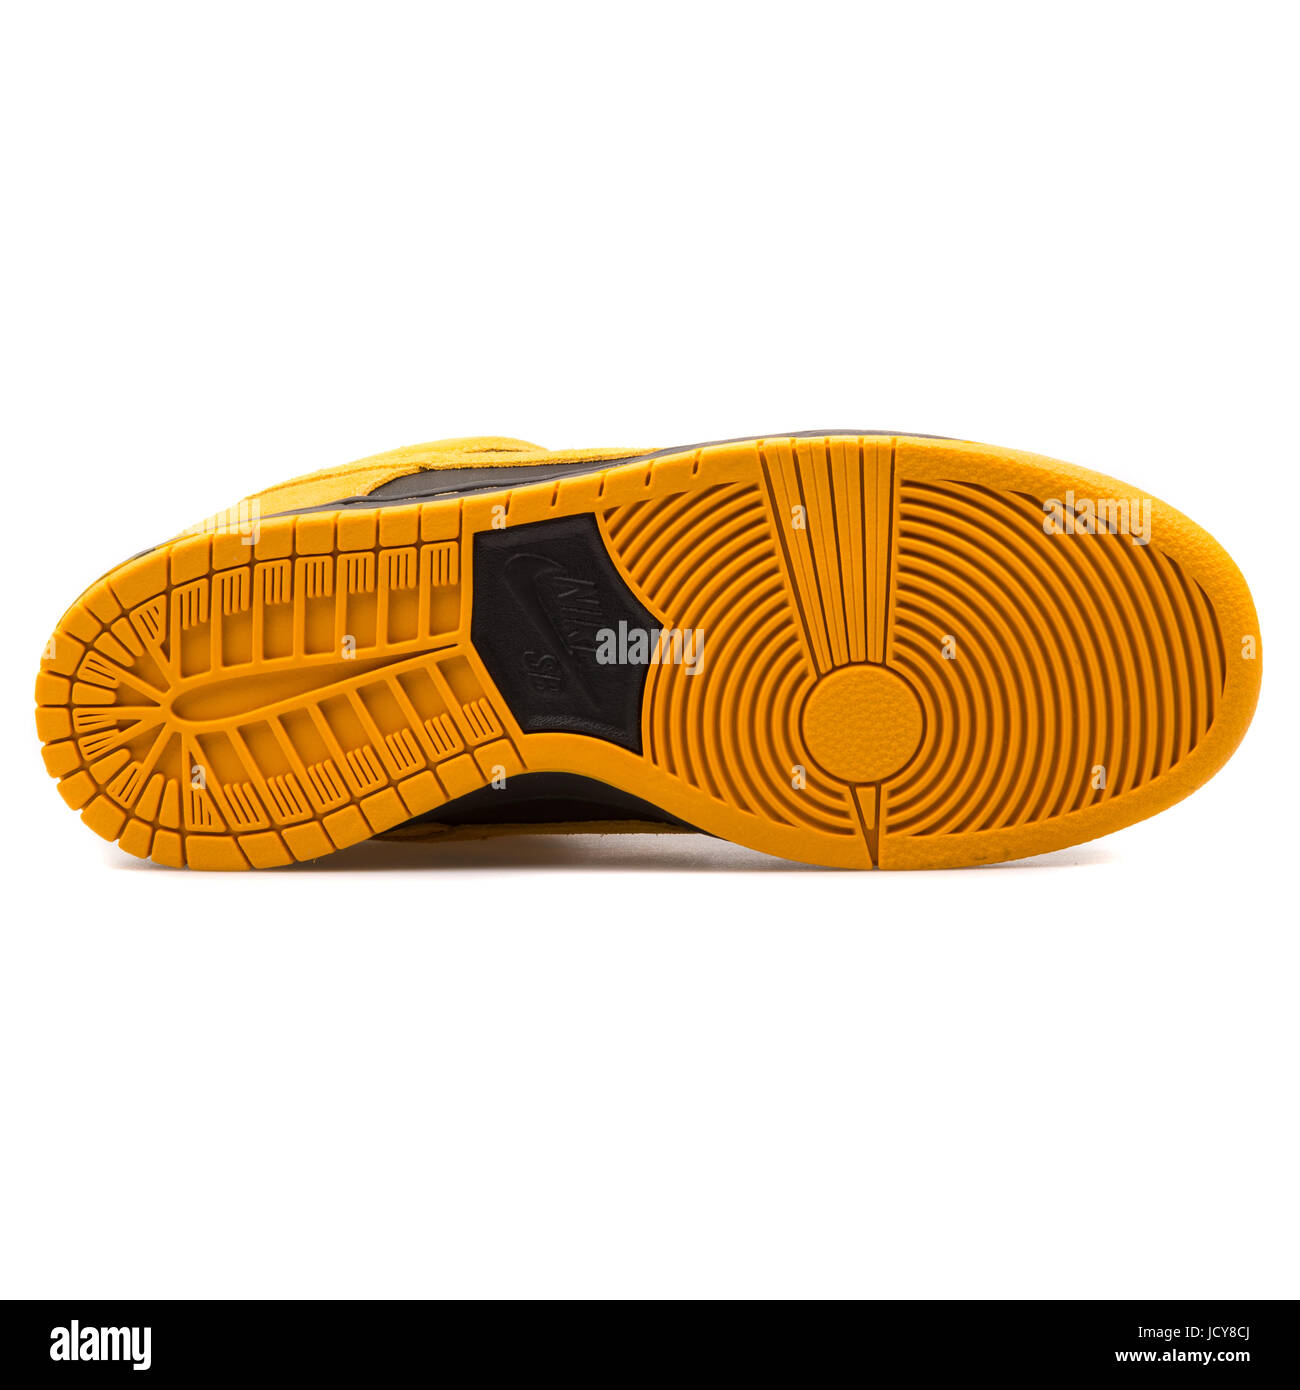 Nike Dunk Low Pro SB Gold Yellow and Black Men's Skateboarding Shoes - 304292-706 - Stock Image